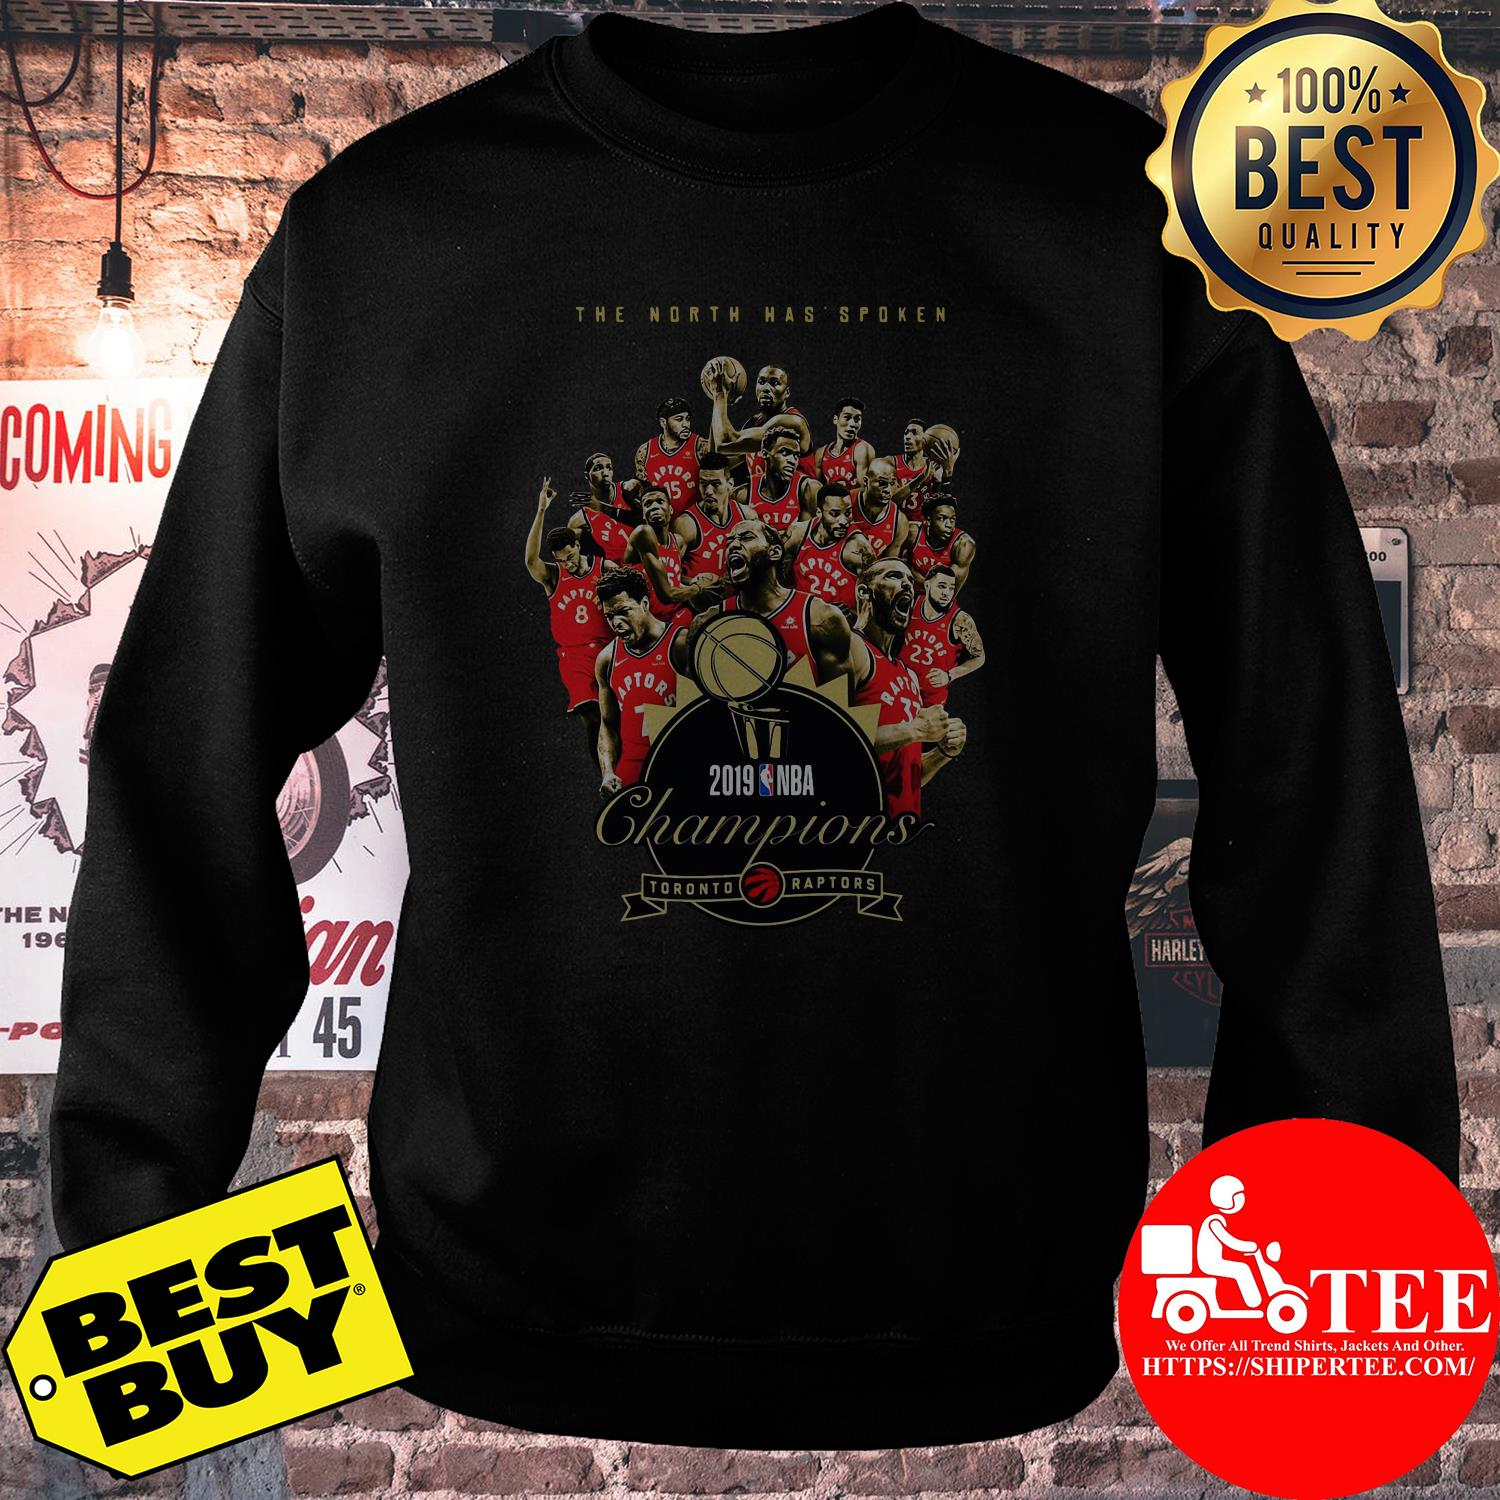 Toronto Raptors The North has spoken 2019 NBA Champions sweatshirt